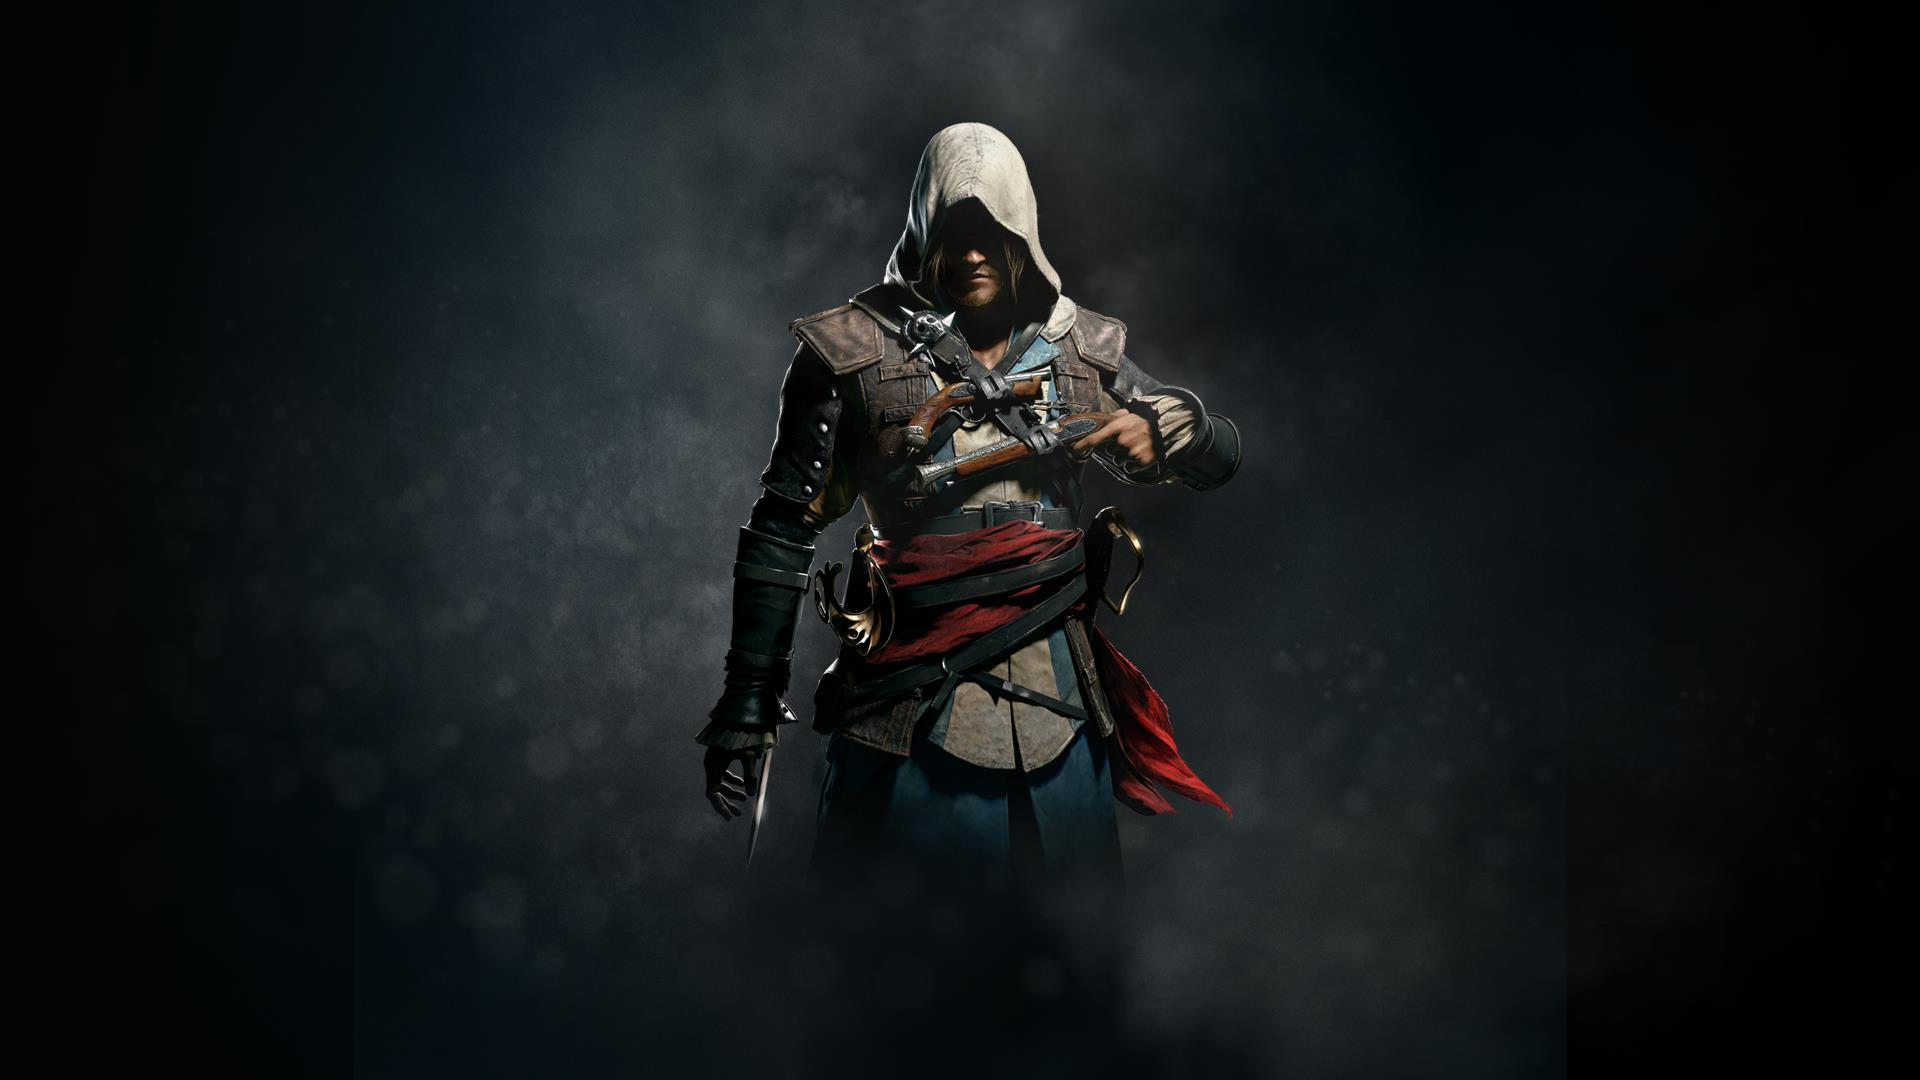 Seven Deadly Seas in Assassin's Creed IV: Black Flag